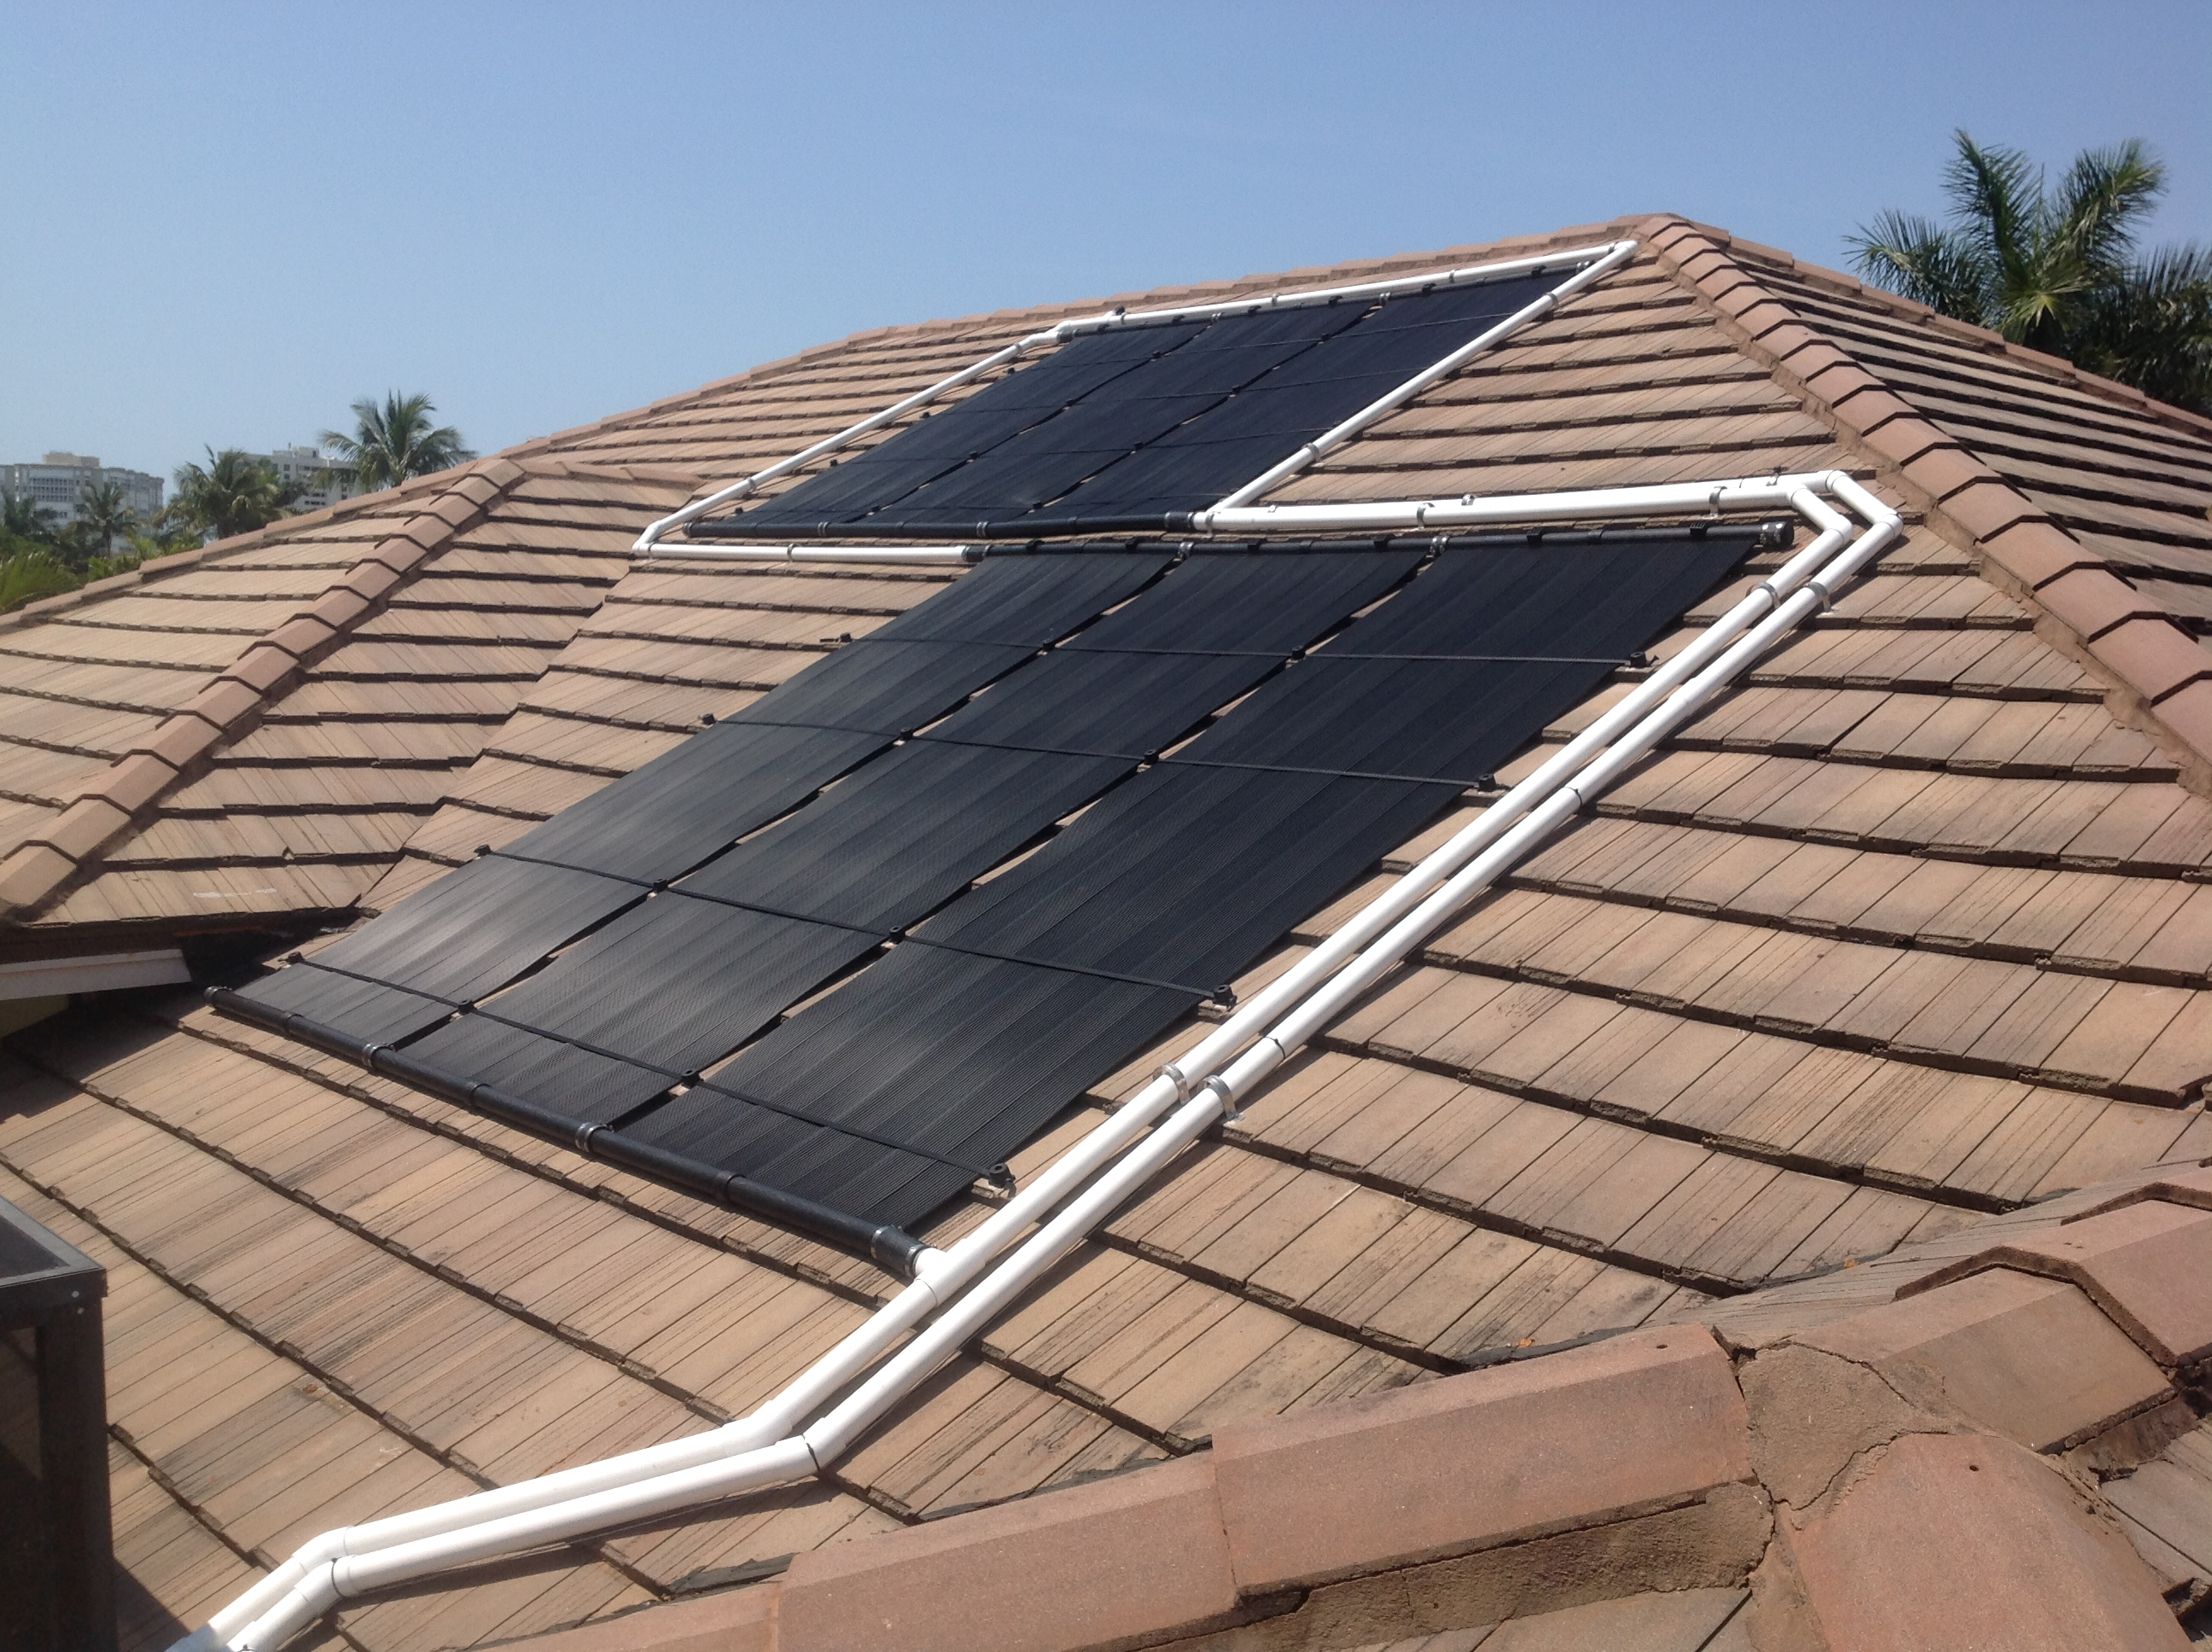 Naples Flat Tile Roof Gets Solar Pool Heater